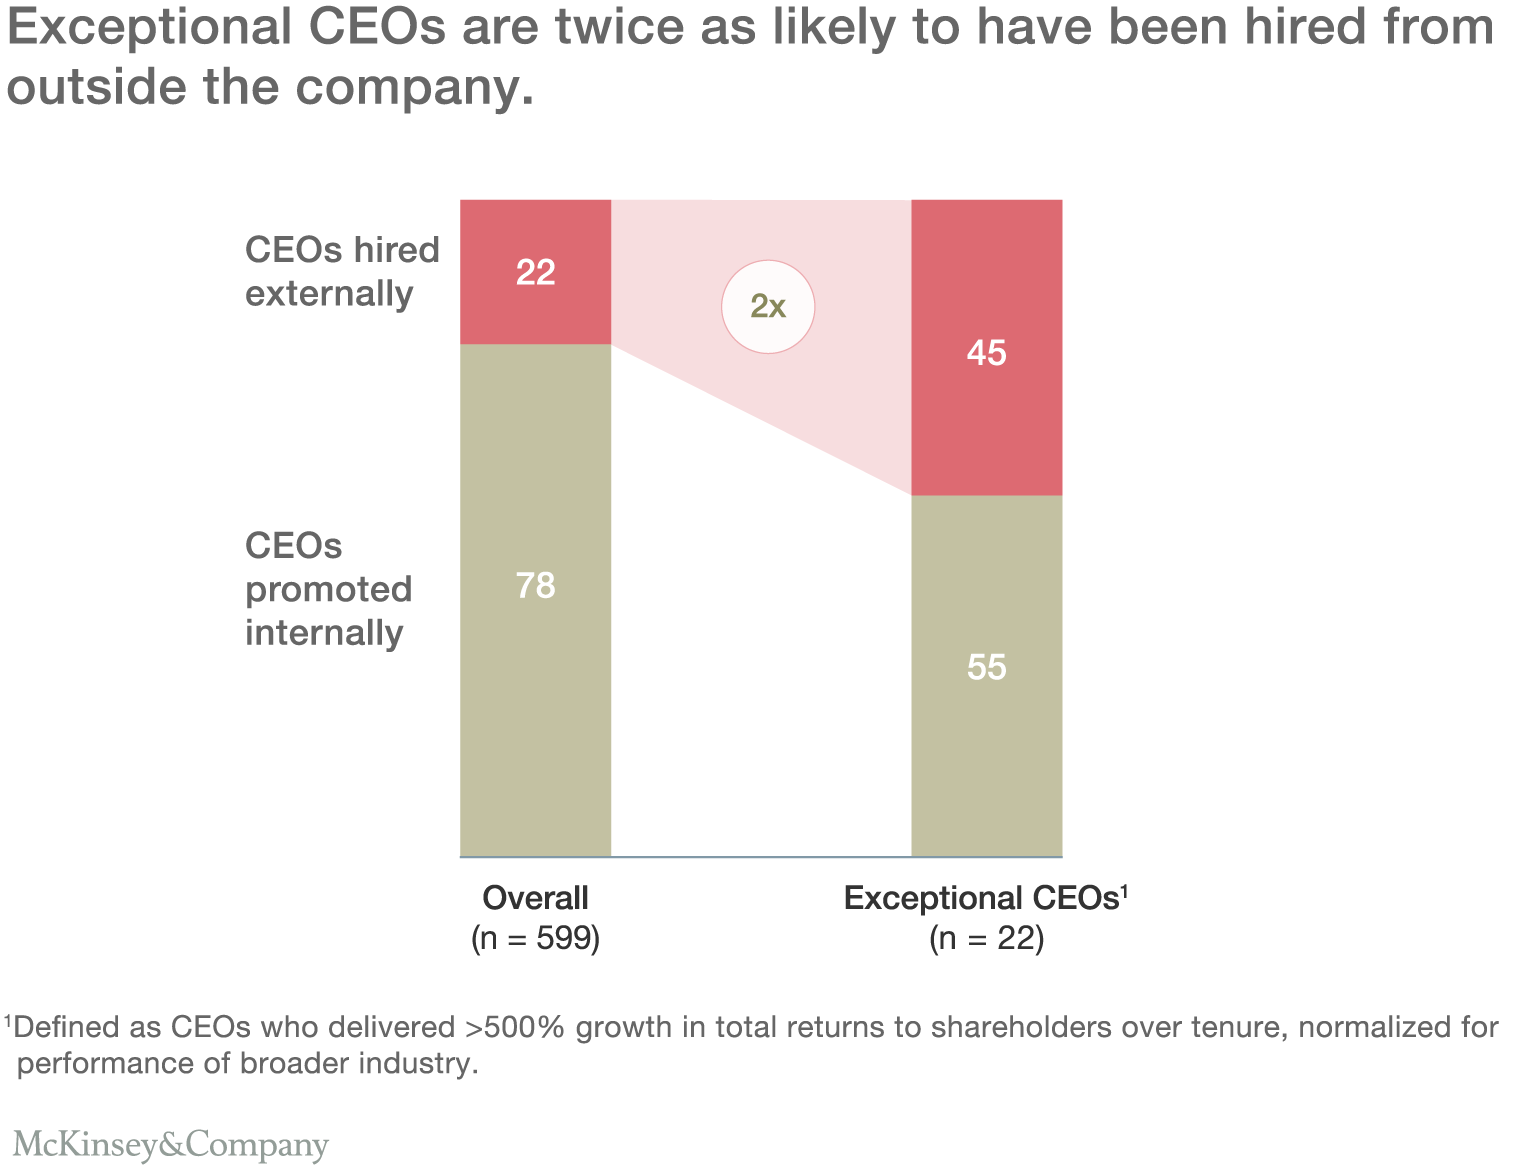 Exceptional CEOs are twice as likely to have been hired from outside the company.